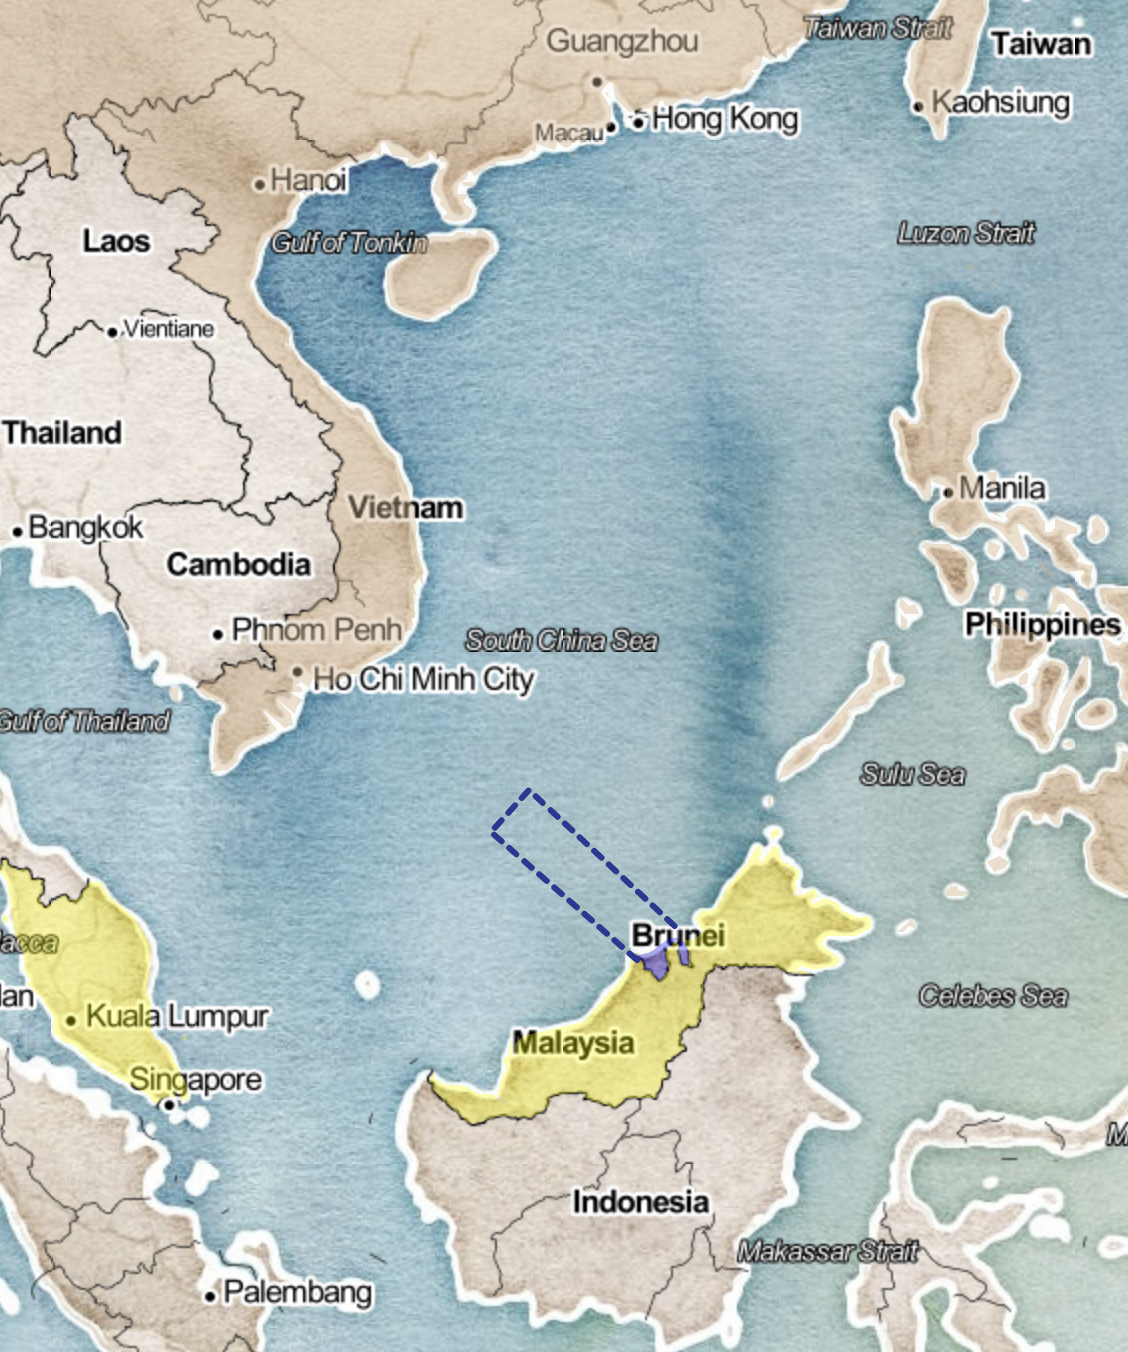 Map of Brunei's claims in the South China Sea